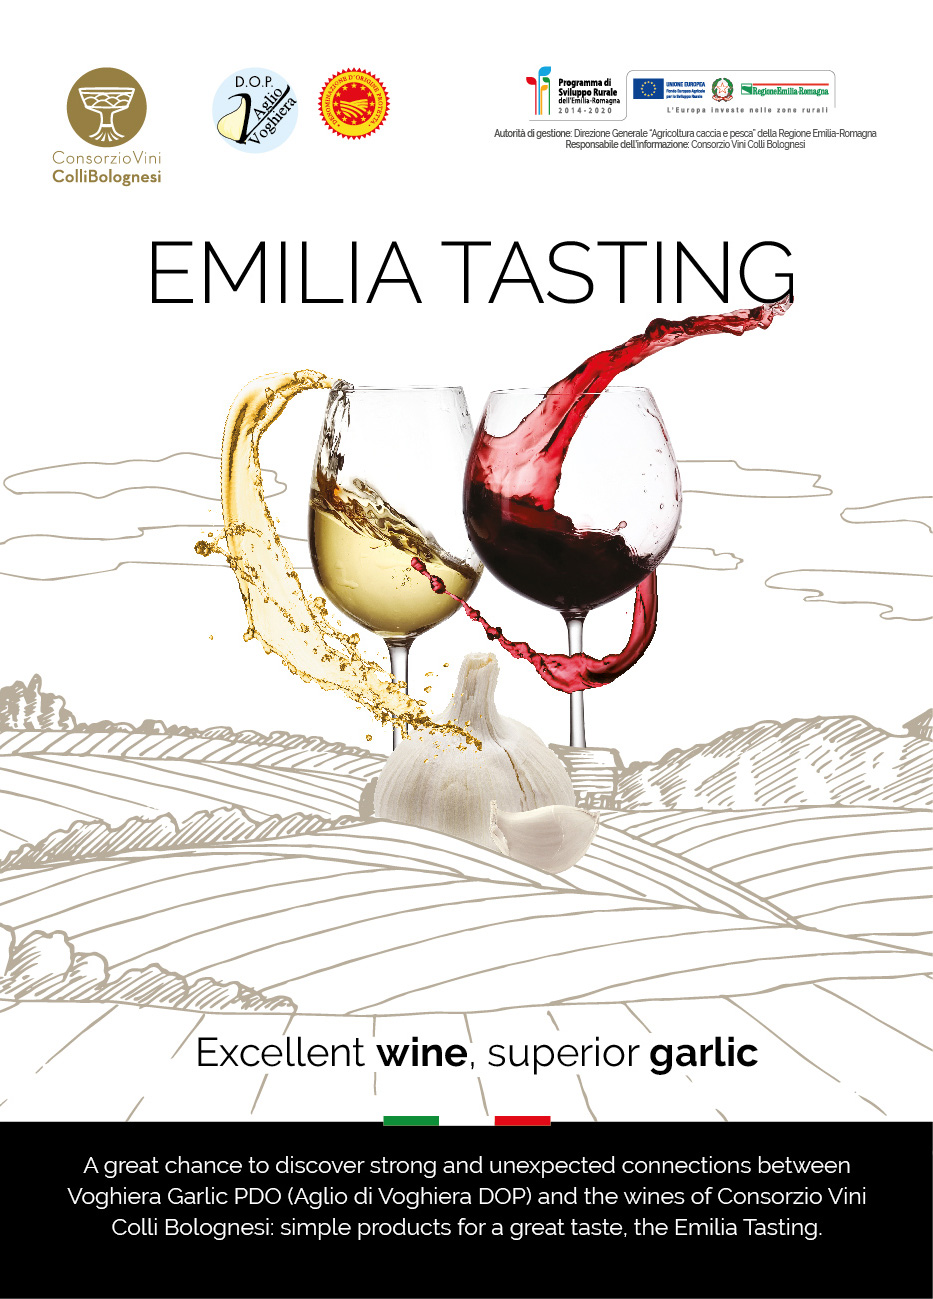 Tasting event - Wine and garlic - Wednesday 8th May4PM-8PMA very exclusive event to learn about Emilia area (Emilia-Romagna region): this is where territory, culture and tradition come together in a perfect union for the mostdistinguishing features of Voghiera Garlic PDO (Aglio di Voghiera DOP) and Colli Bolognesi PDO wines.